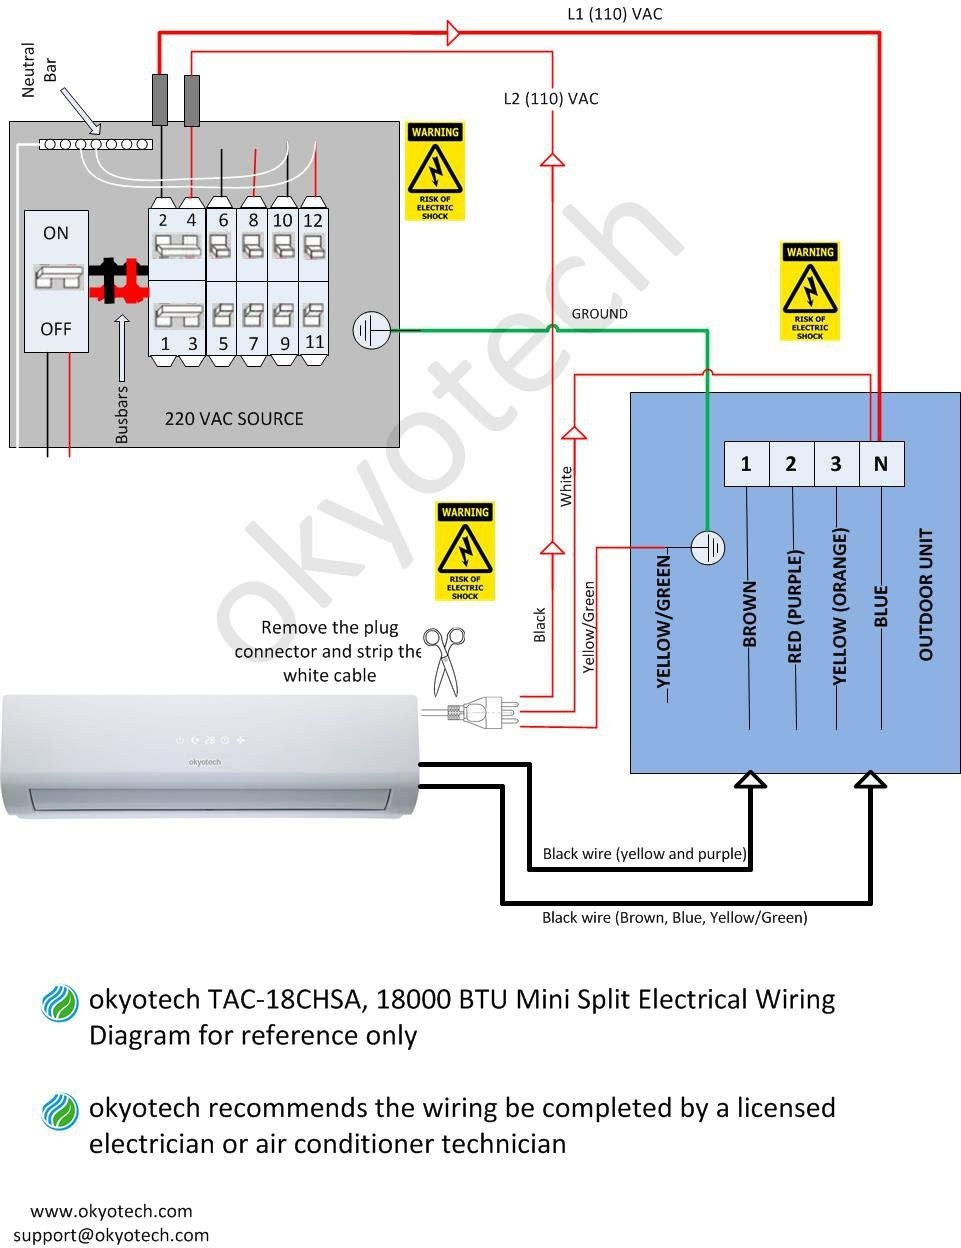 ac heater wire schematcs home ac heater wiring motbile fujitsu mini split heat pump wiring diagram | free wiring ...